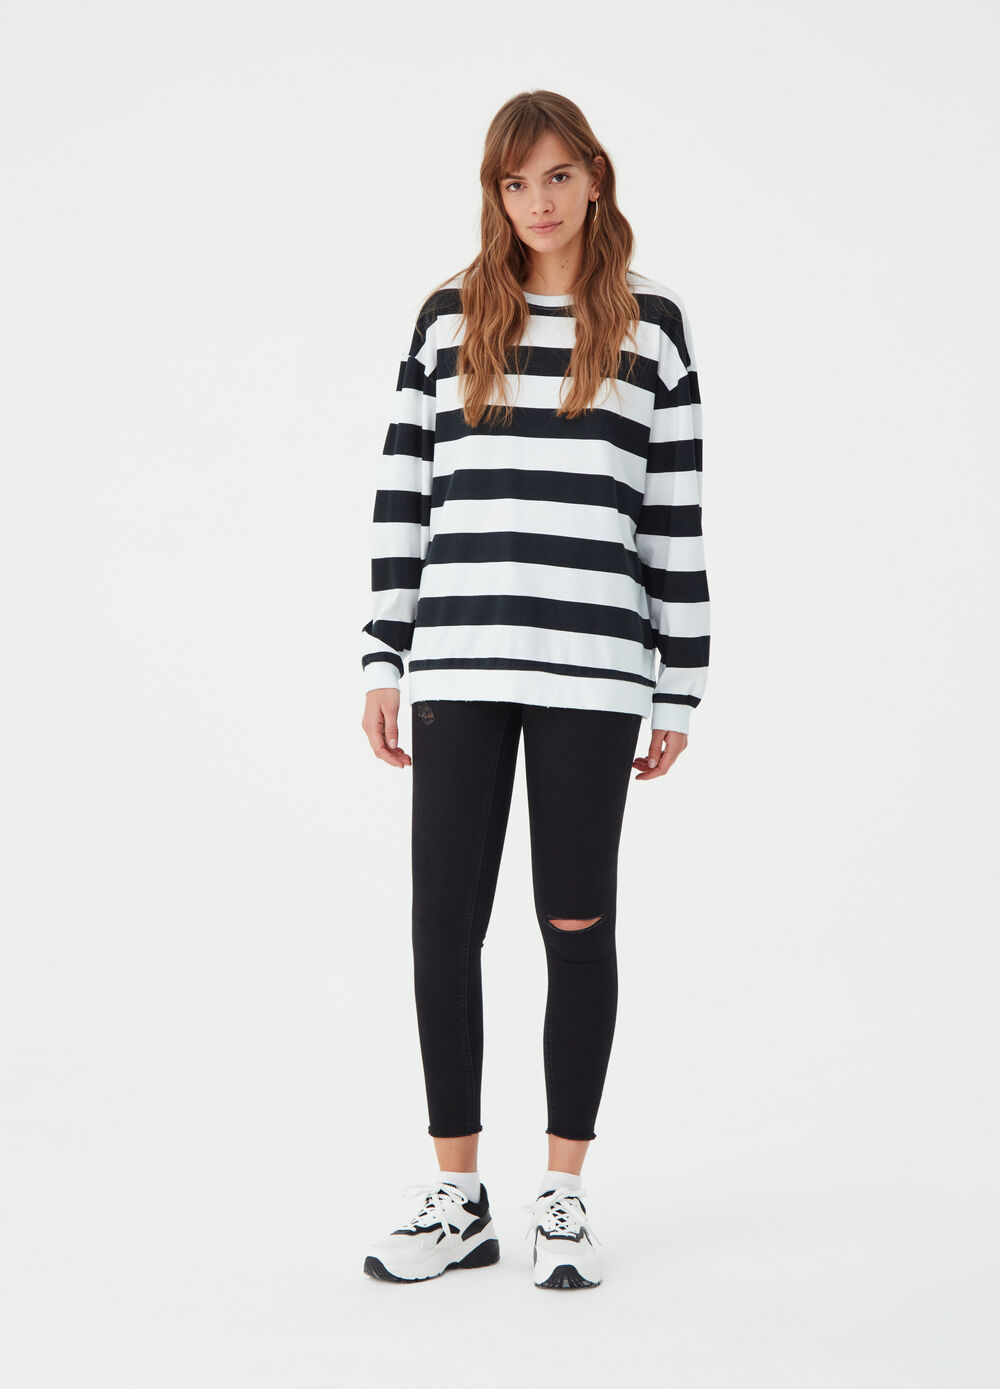 Over-fit BCI T-shirt with striped pattern